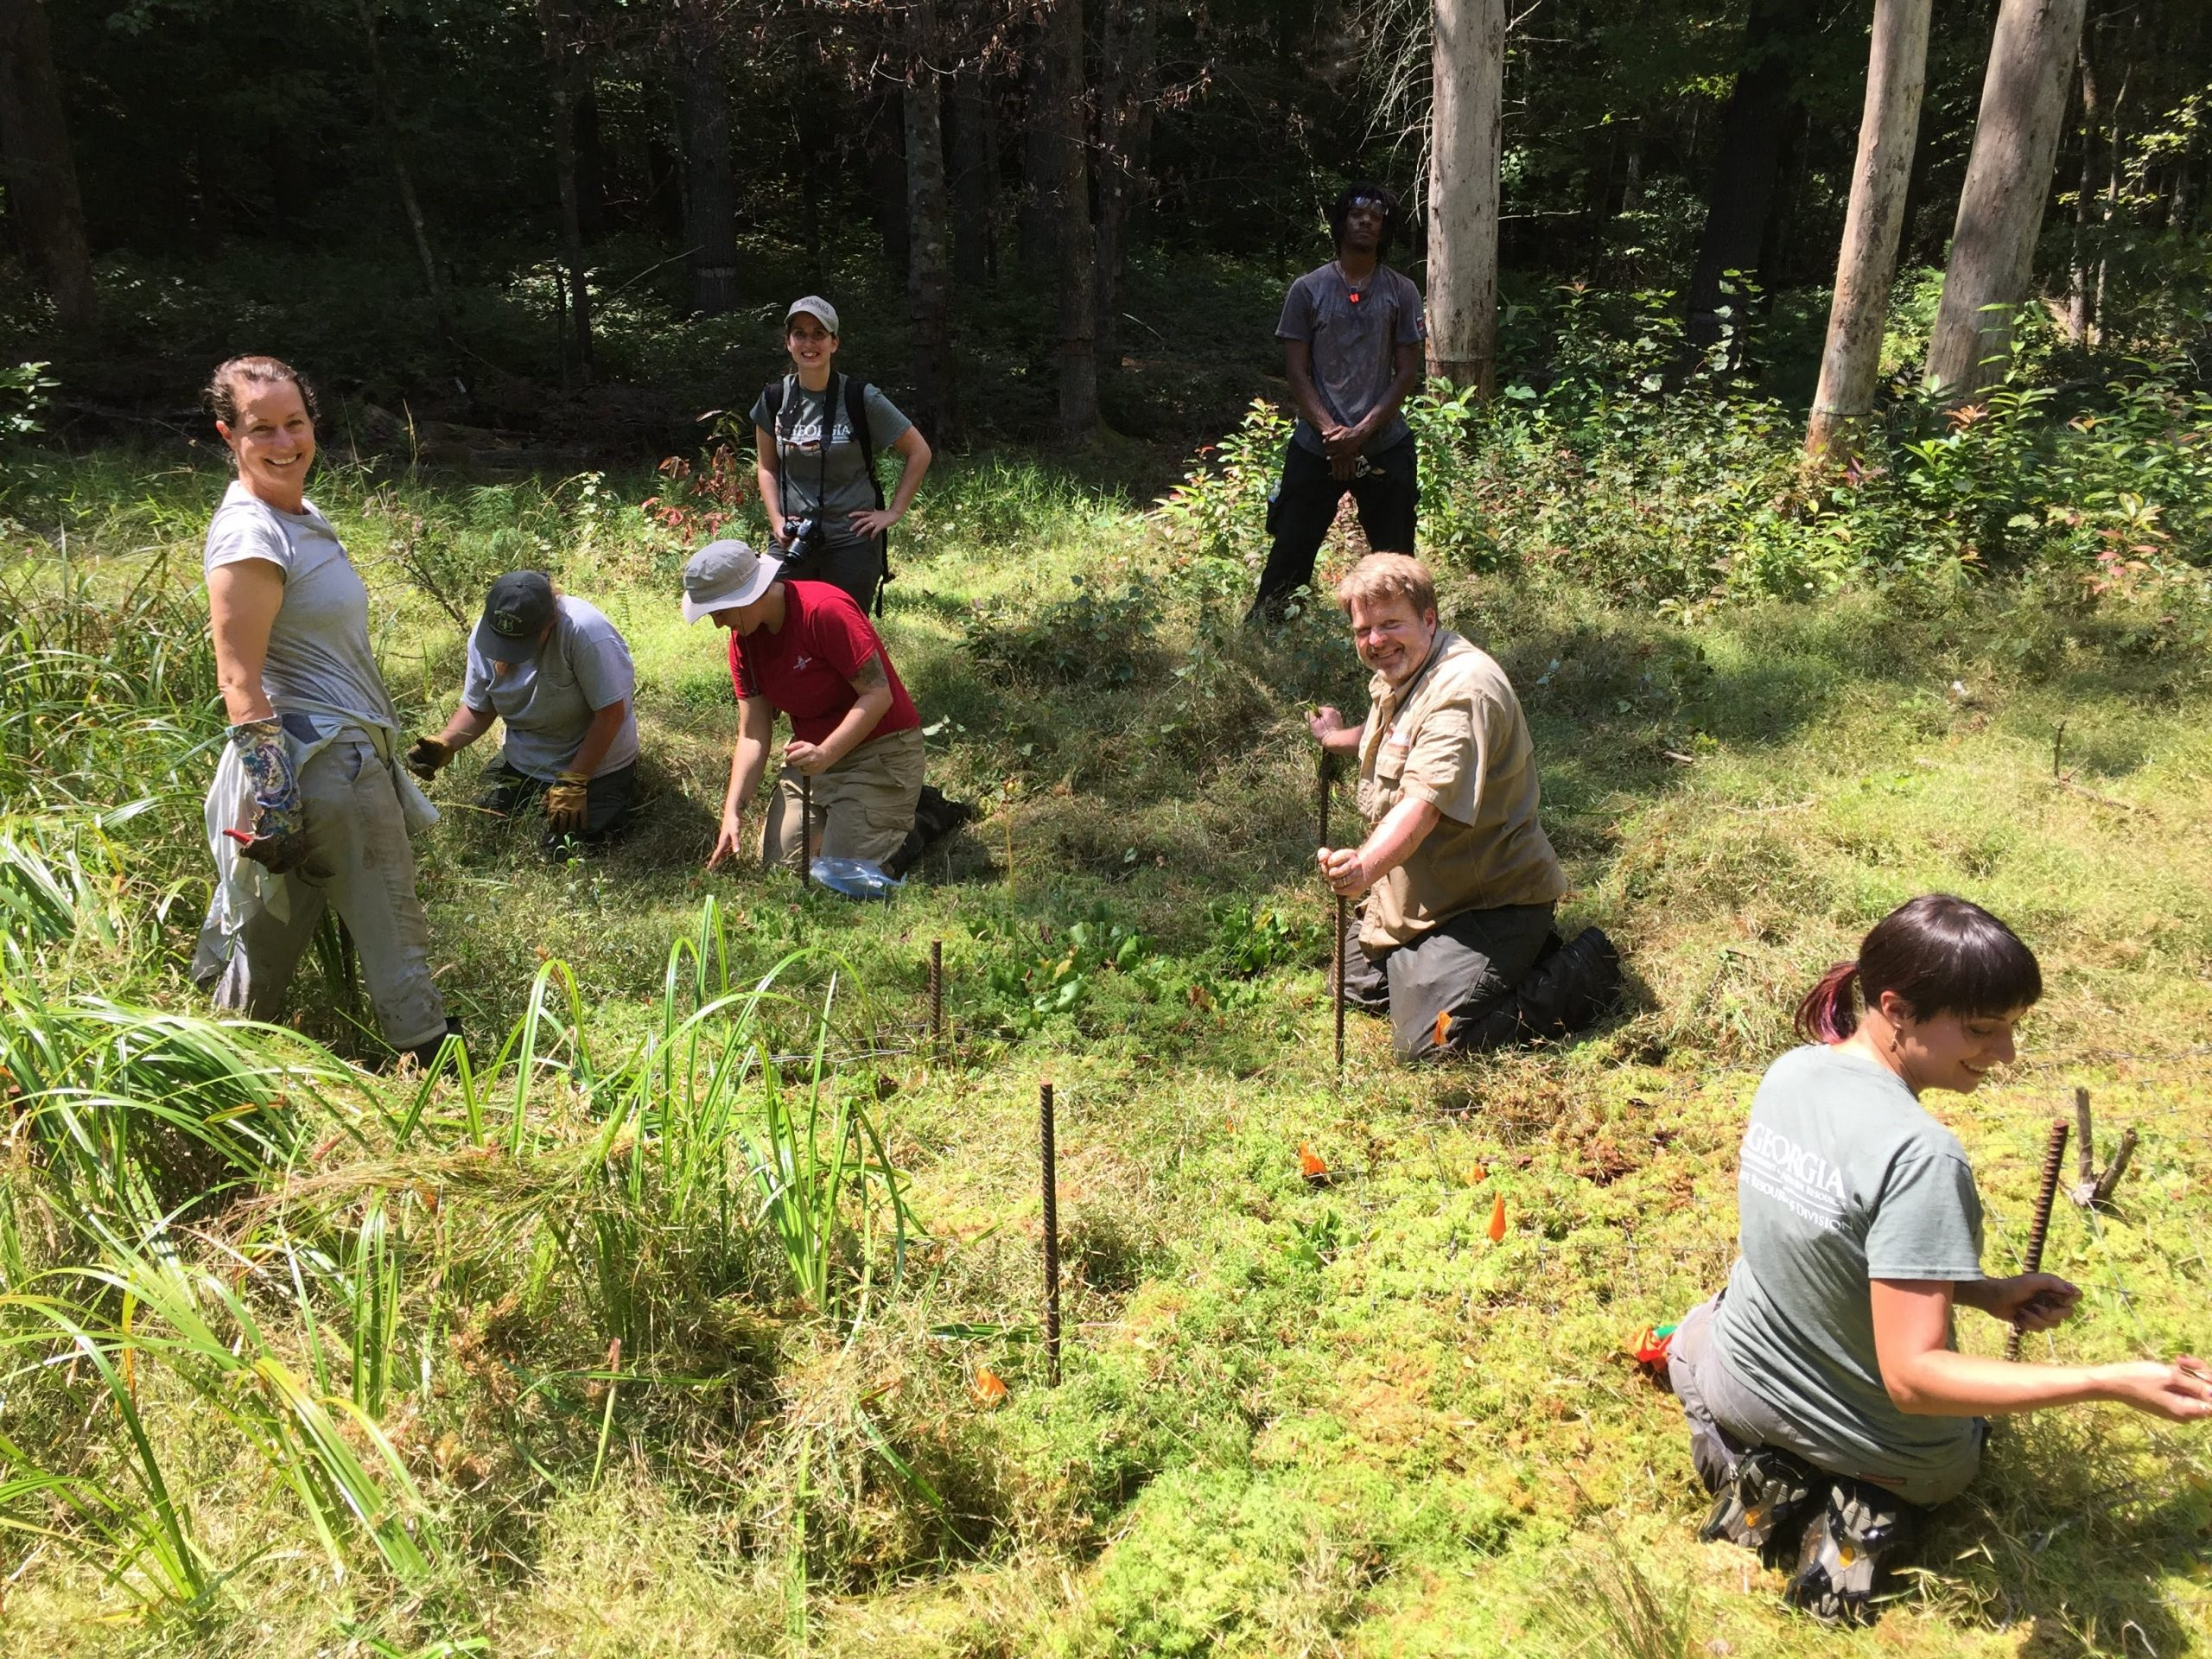 """Ceska, at left with GPCA colleagues, """"gardening"""" in situ around imperiled bog species to provide more light for flowering. GPCA partners include U.S. Forest Service staff and interns, Atlanta Botanical Garden staff (Jess Stephens in red), Georgia Department of Natural Resources staff. Photo credit: Lila Uzzell, courtesy of Atlanta Botanical Garden."""